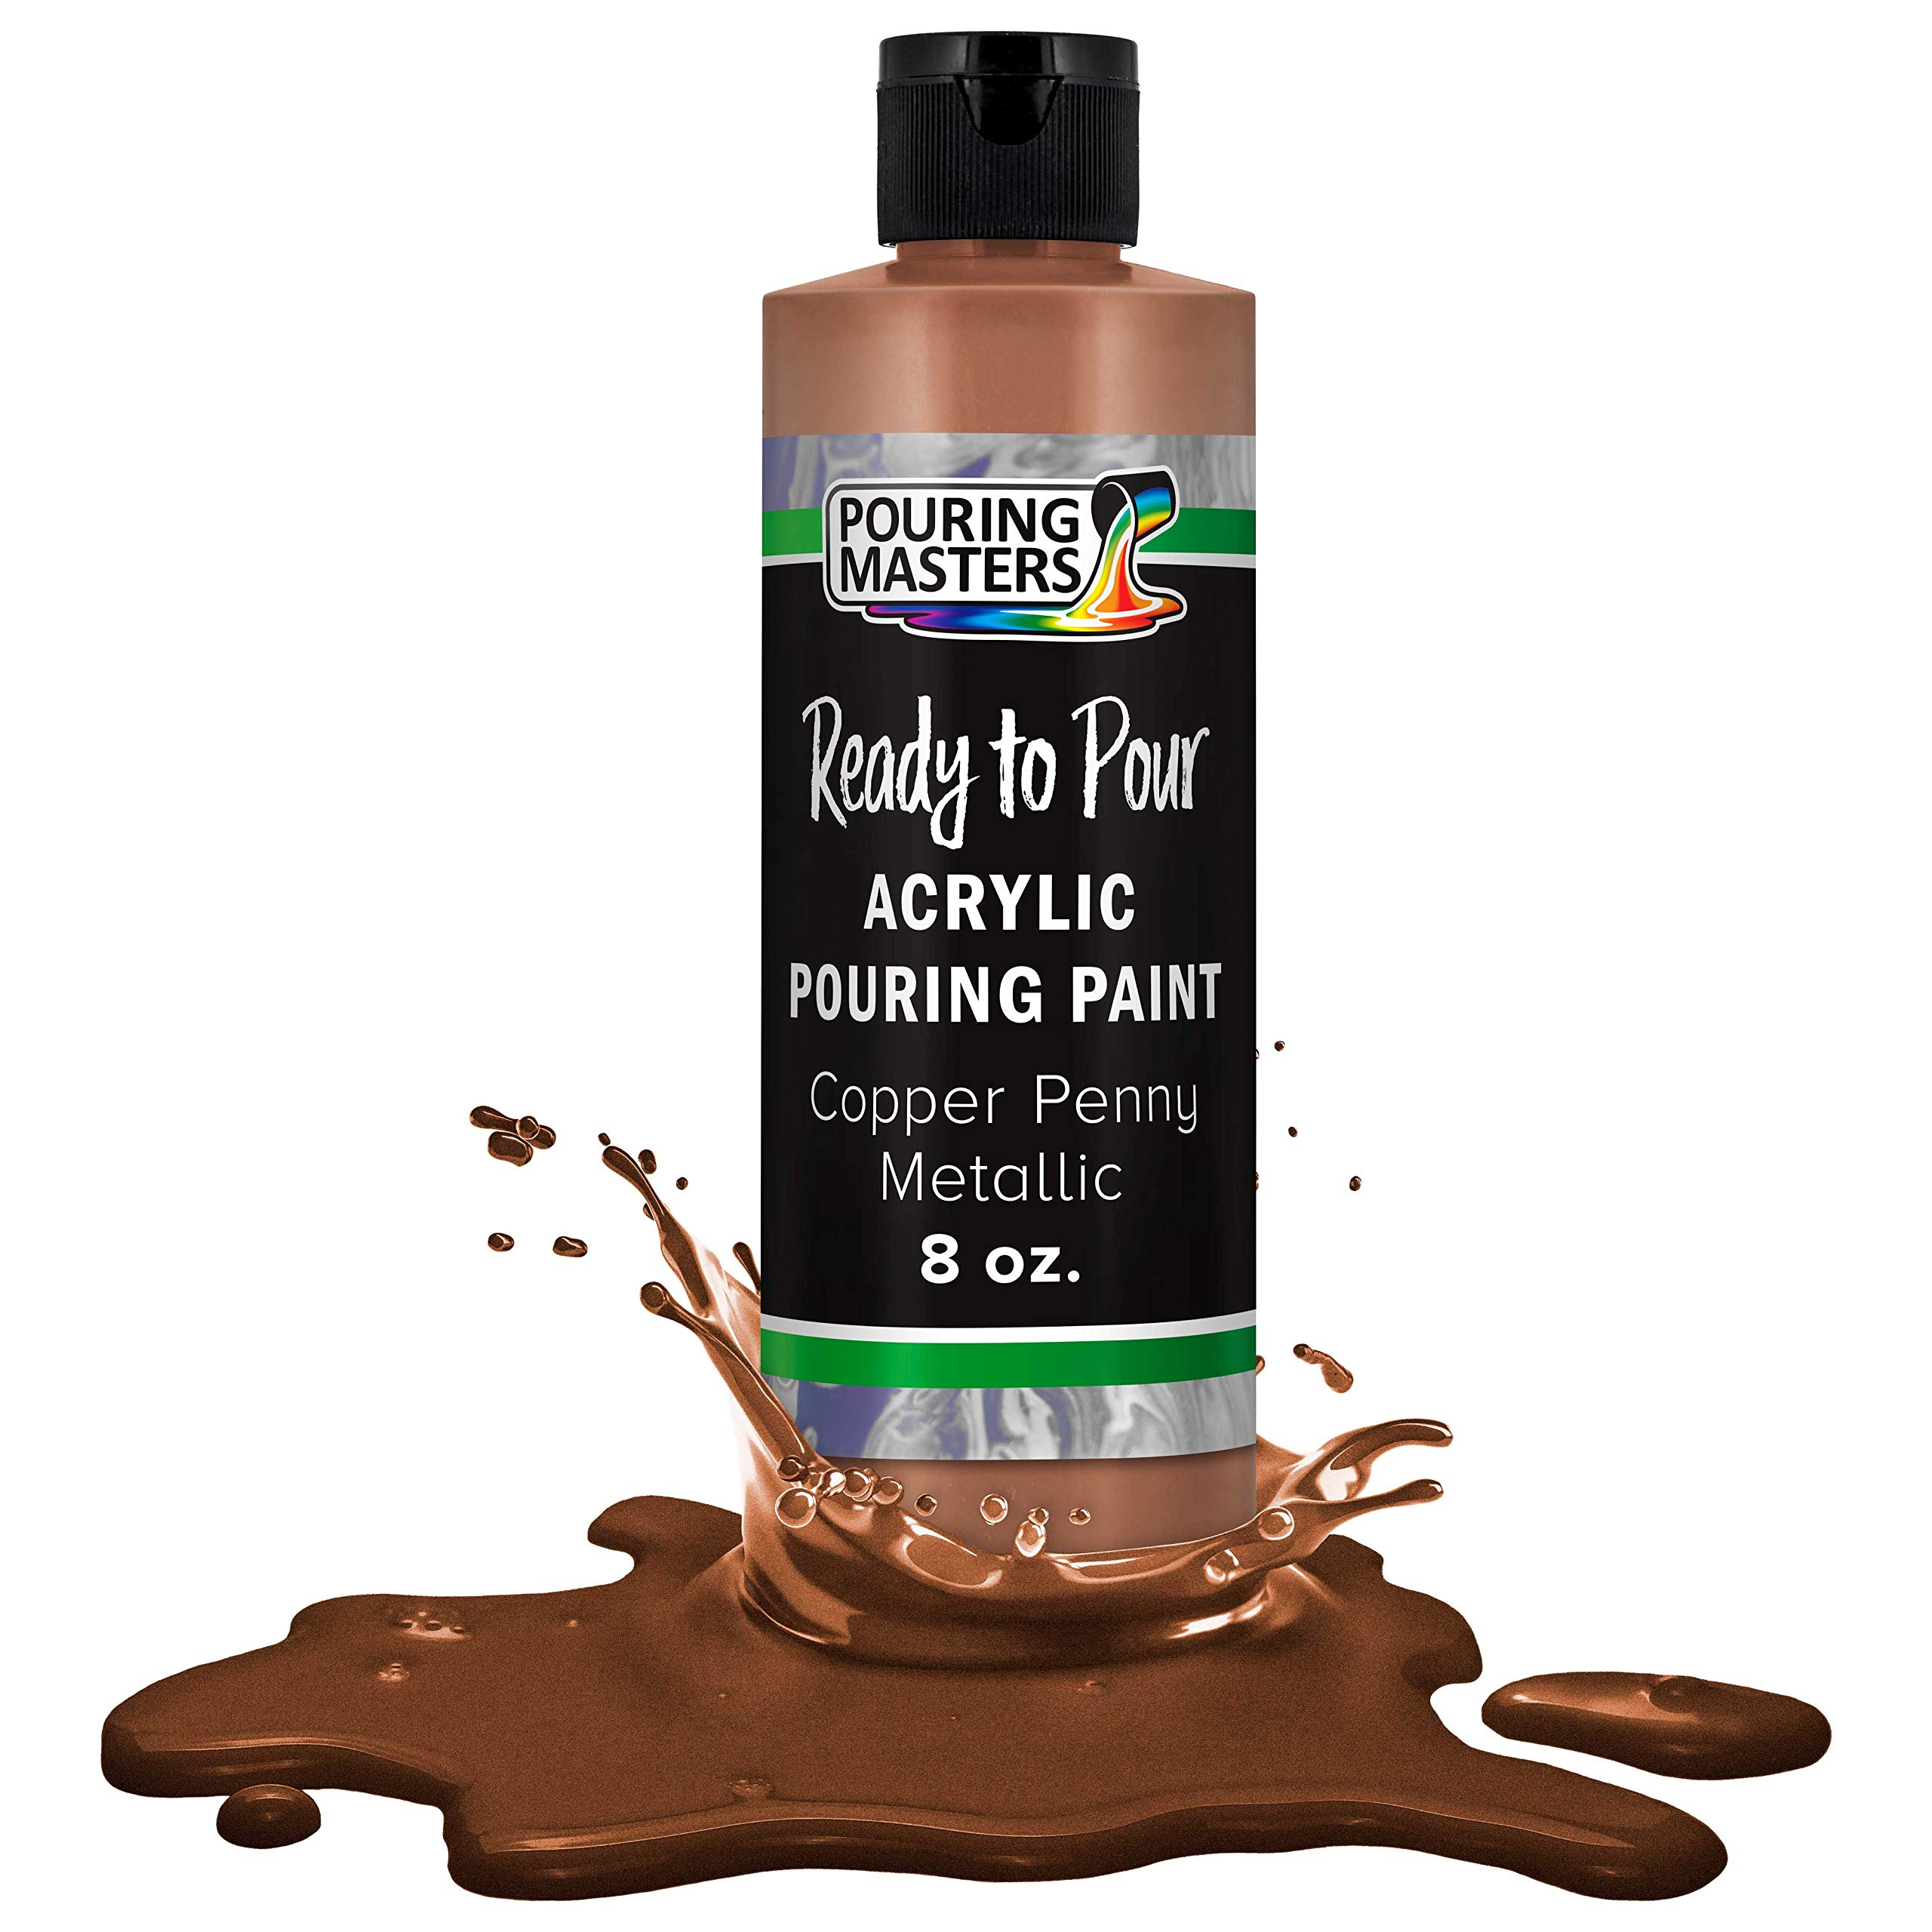 Pouring Masters Copper Penny Metallic Acrylic Ready to Pour Pouring Paint – Premium 8-Ounce Pre-Mixed Water-Based - for Canvas, Wood, Paper, Crafts, Tile, Rocks and More